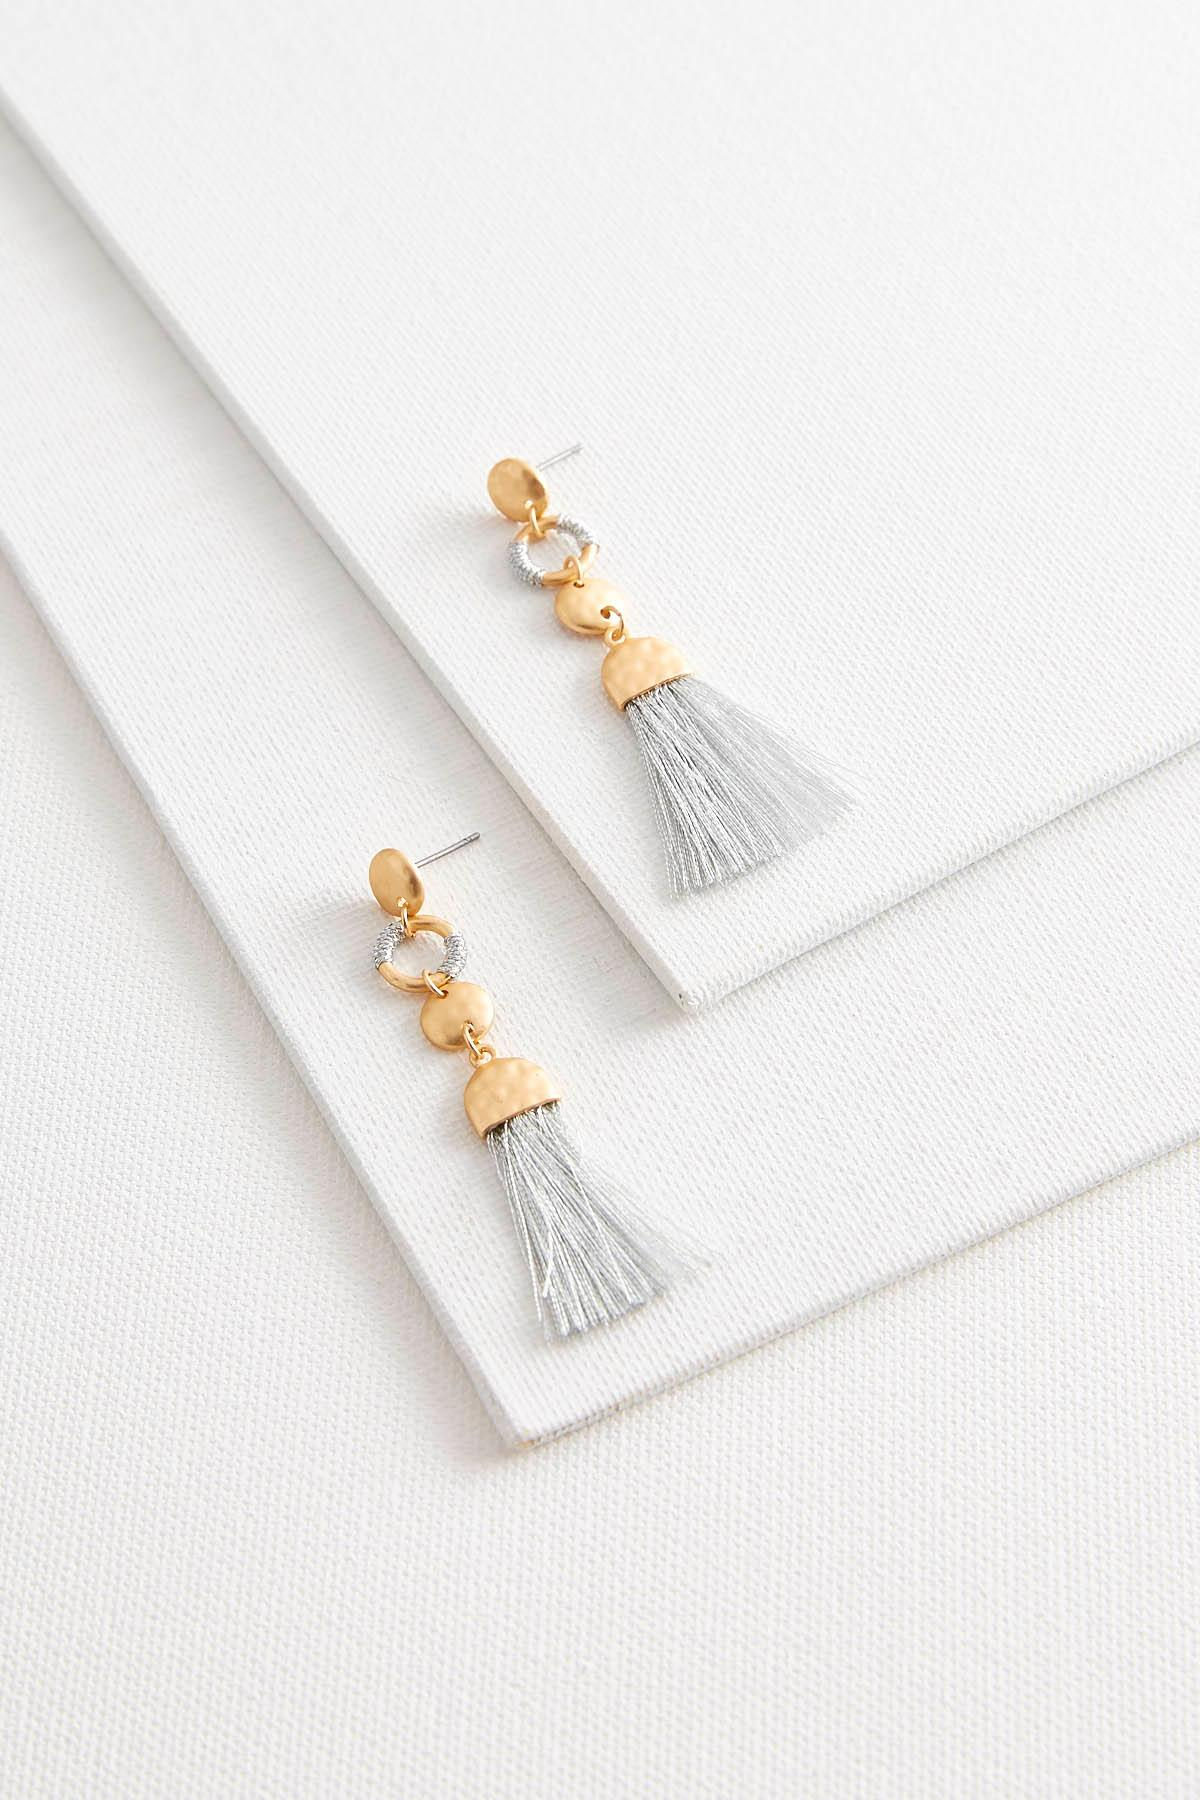 Two- Toned Earrings